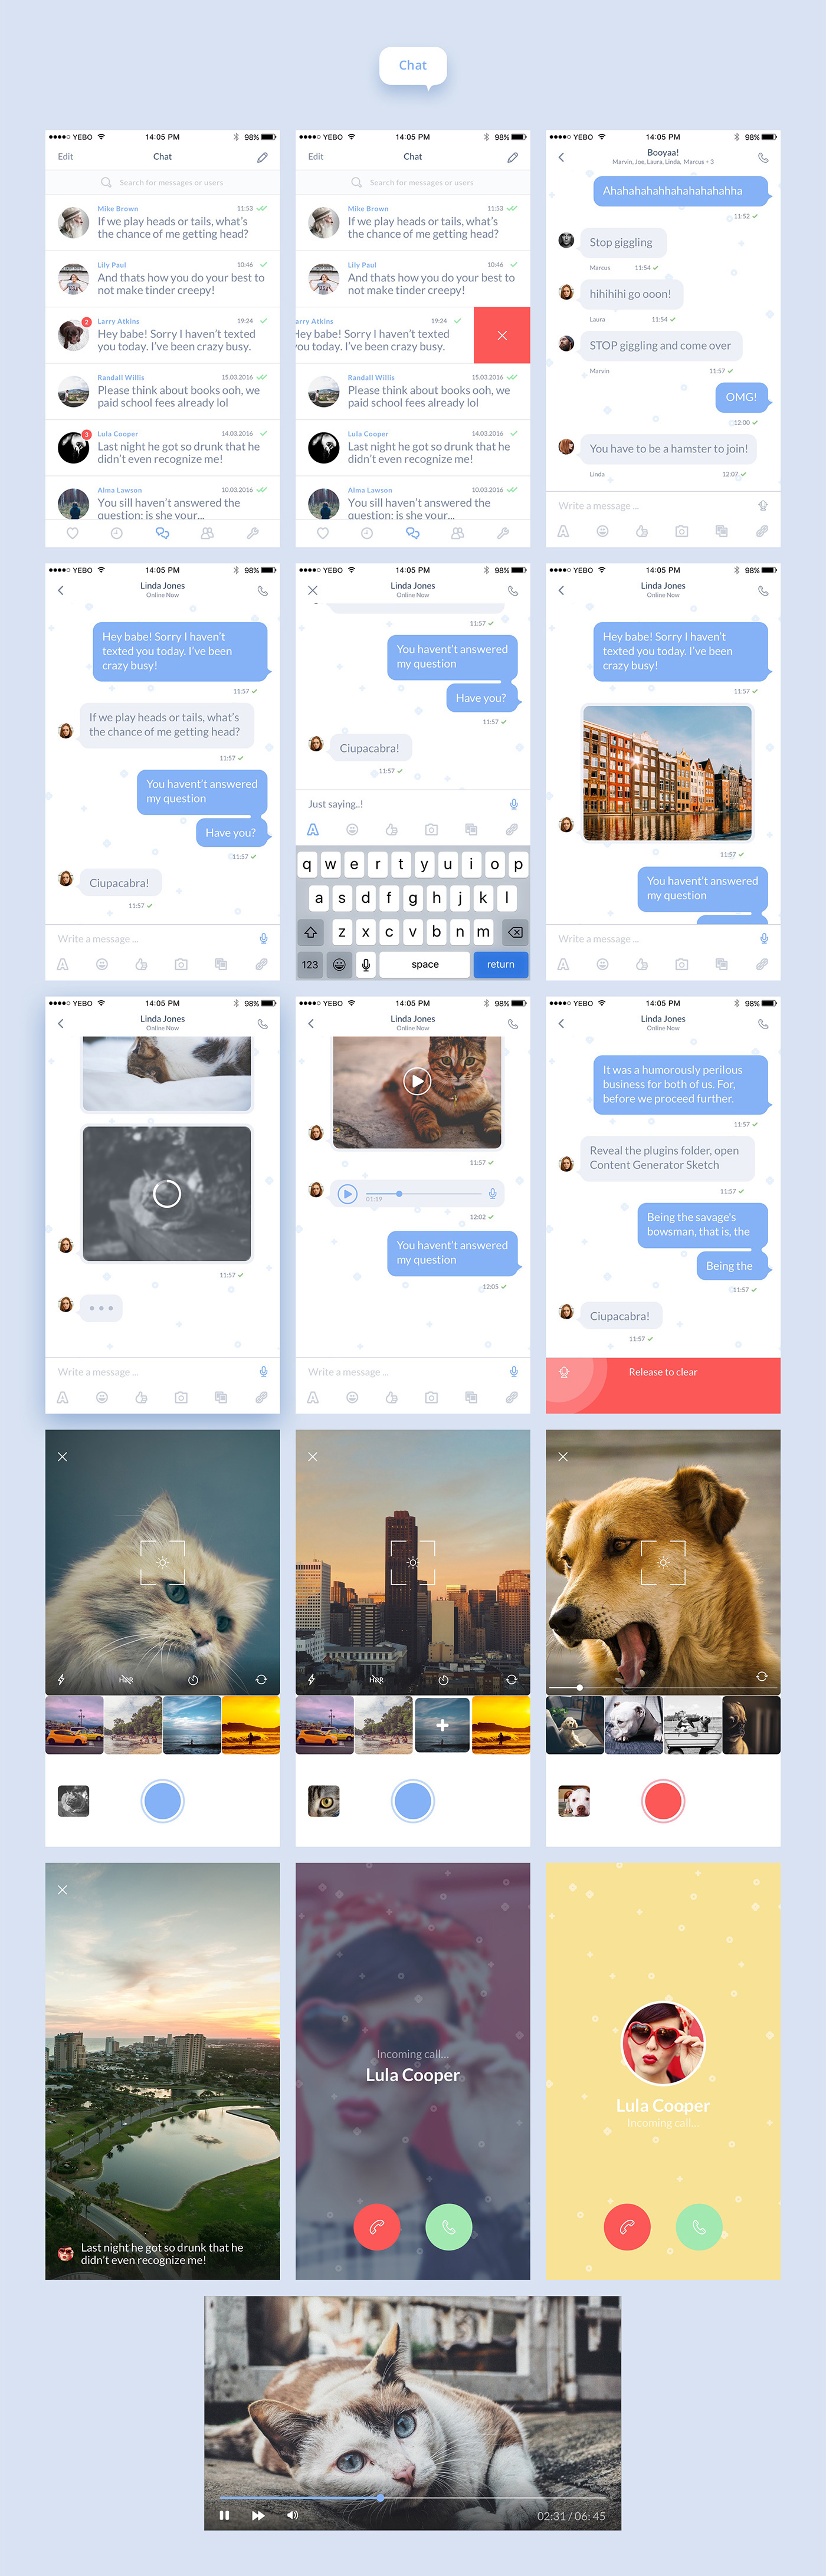 Burble is not just a template, it is the first interactive ready chat UI Kit. With Burble you can have a full chat app in no time. 50+ handcrafted colorful Sketch screens that you can easily link together to have a well designed, functional and fresh demo…